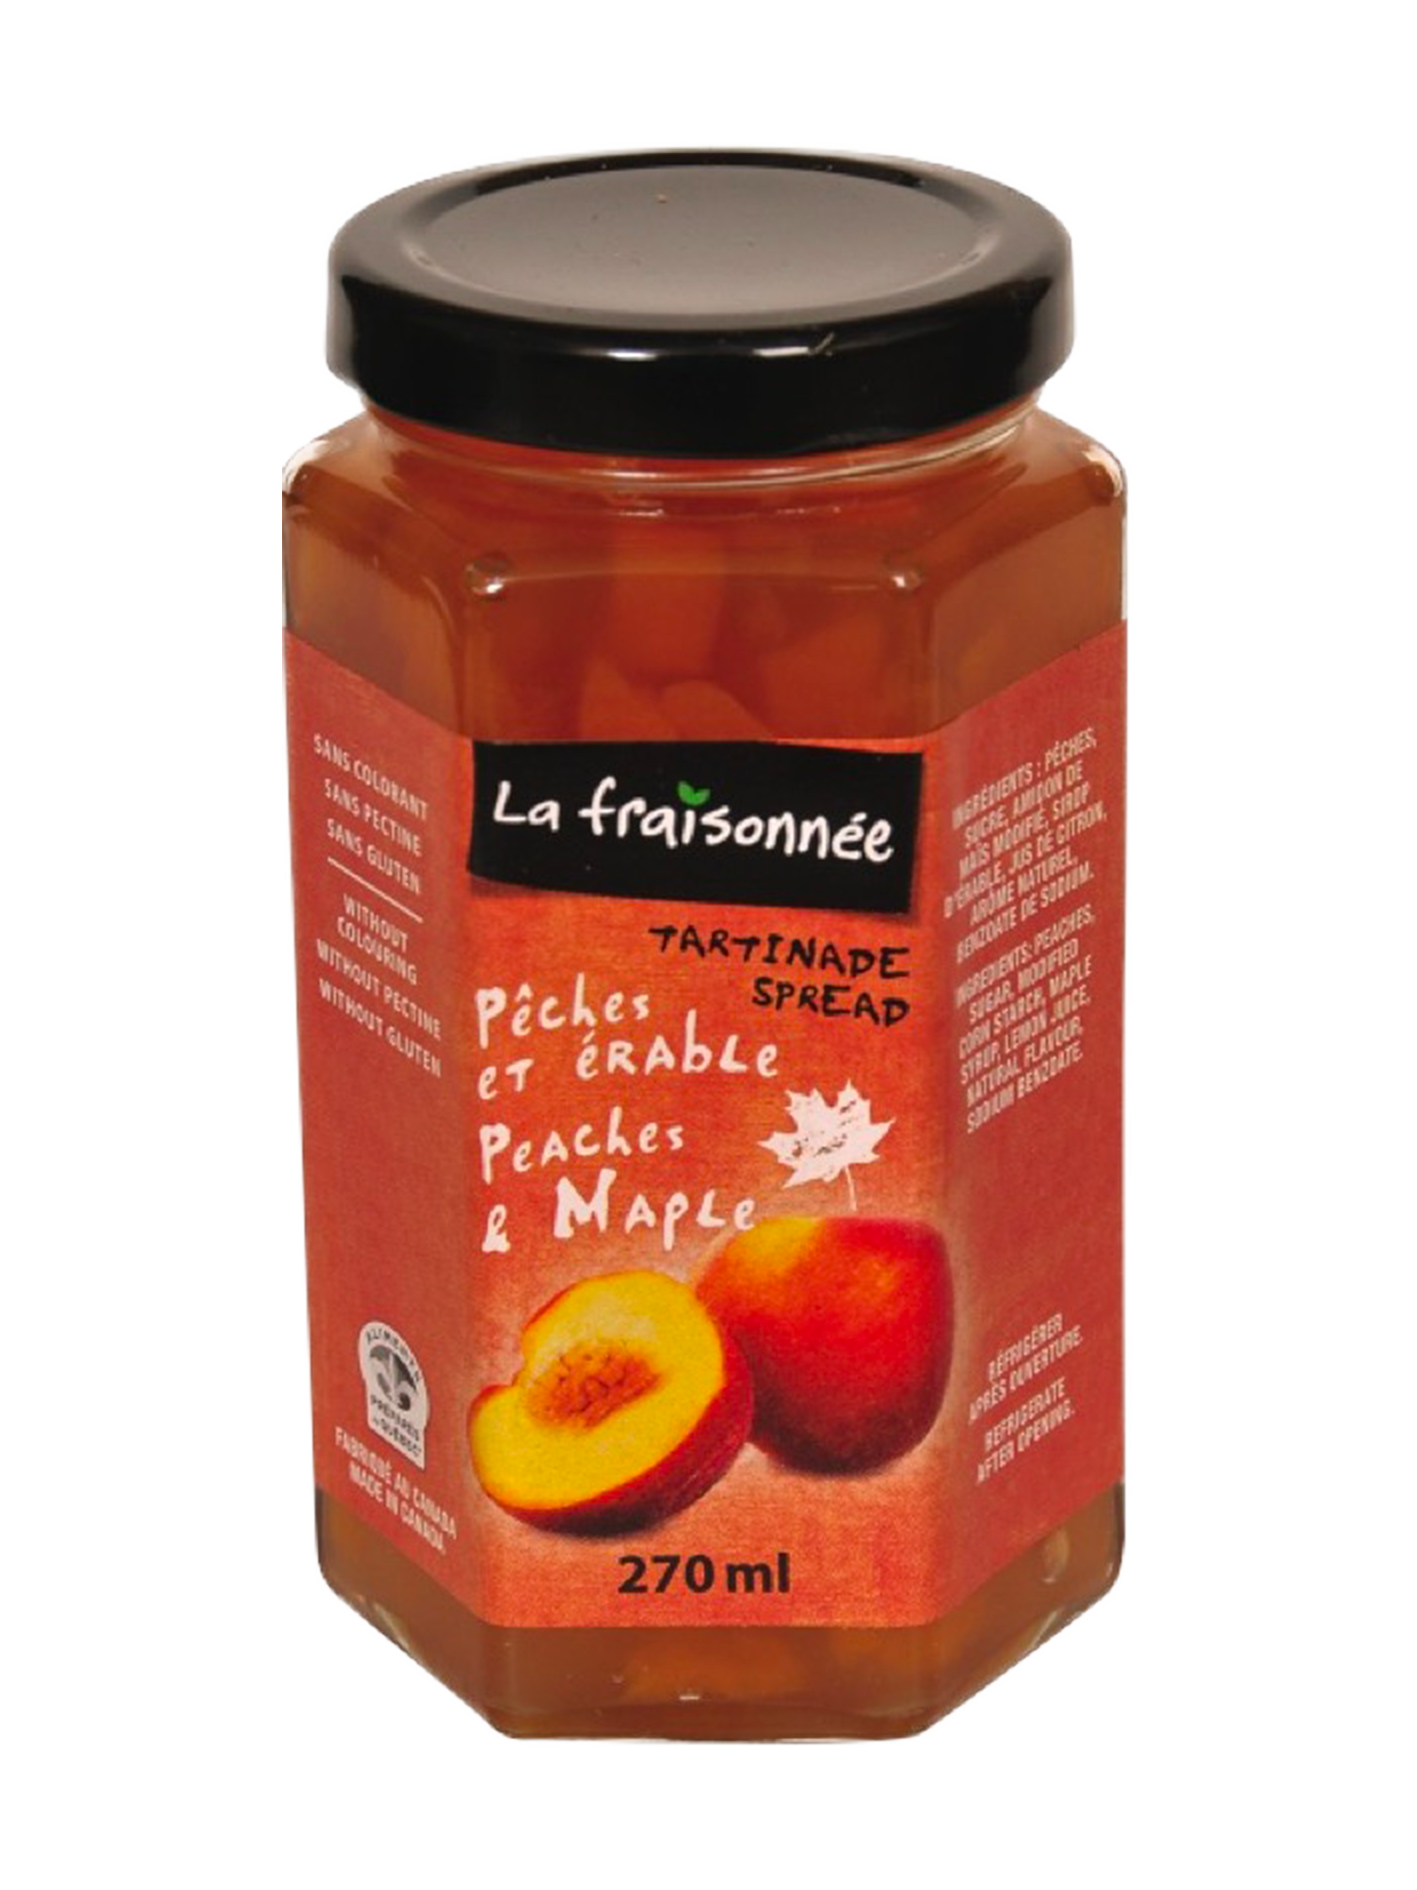 Pack 3 Maple's peaches Jam  (270 ml)